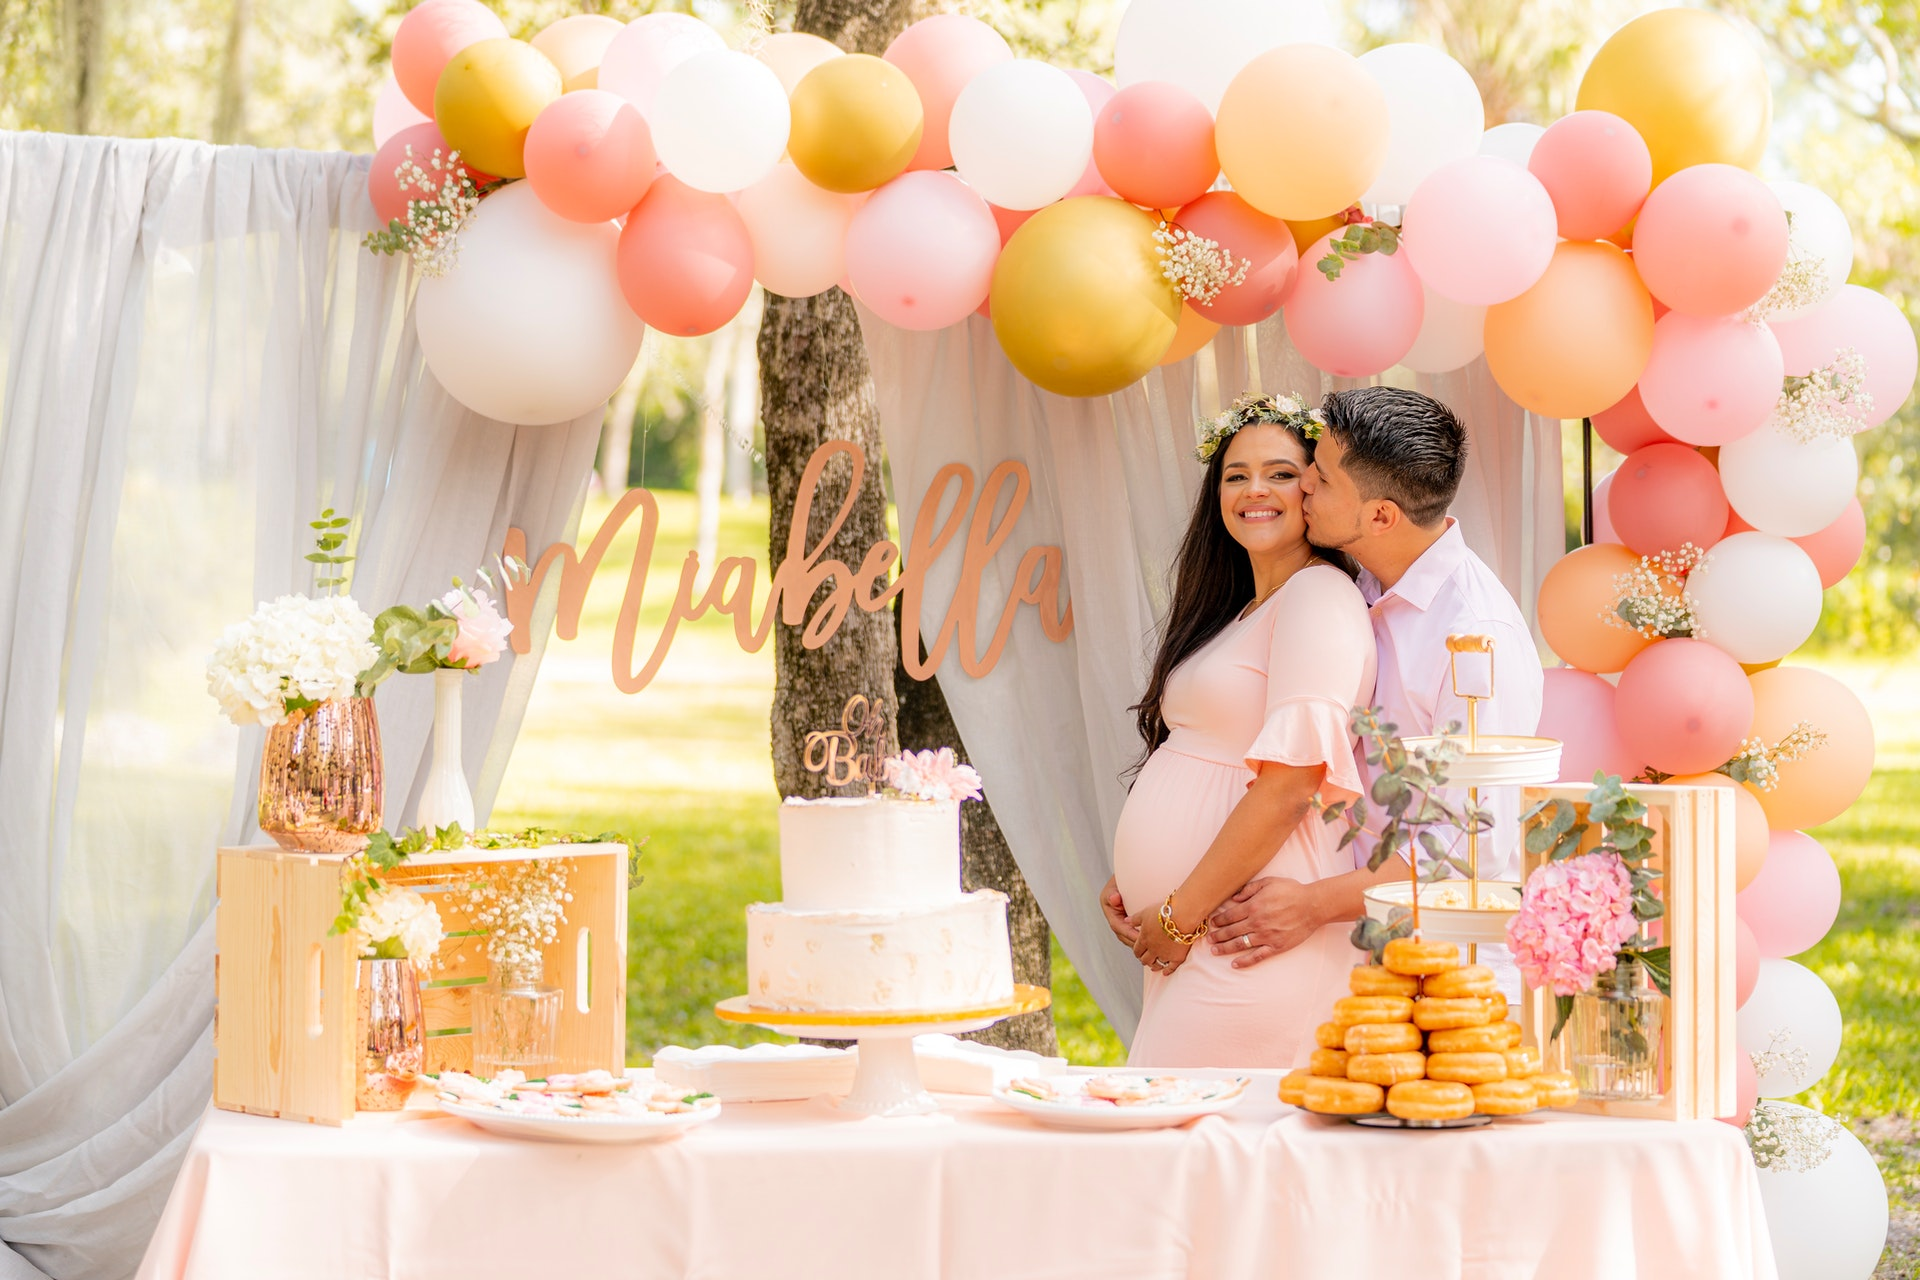 What Happens During A Baby Shower?